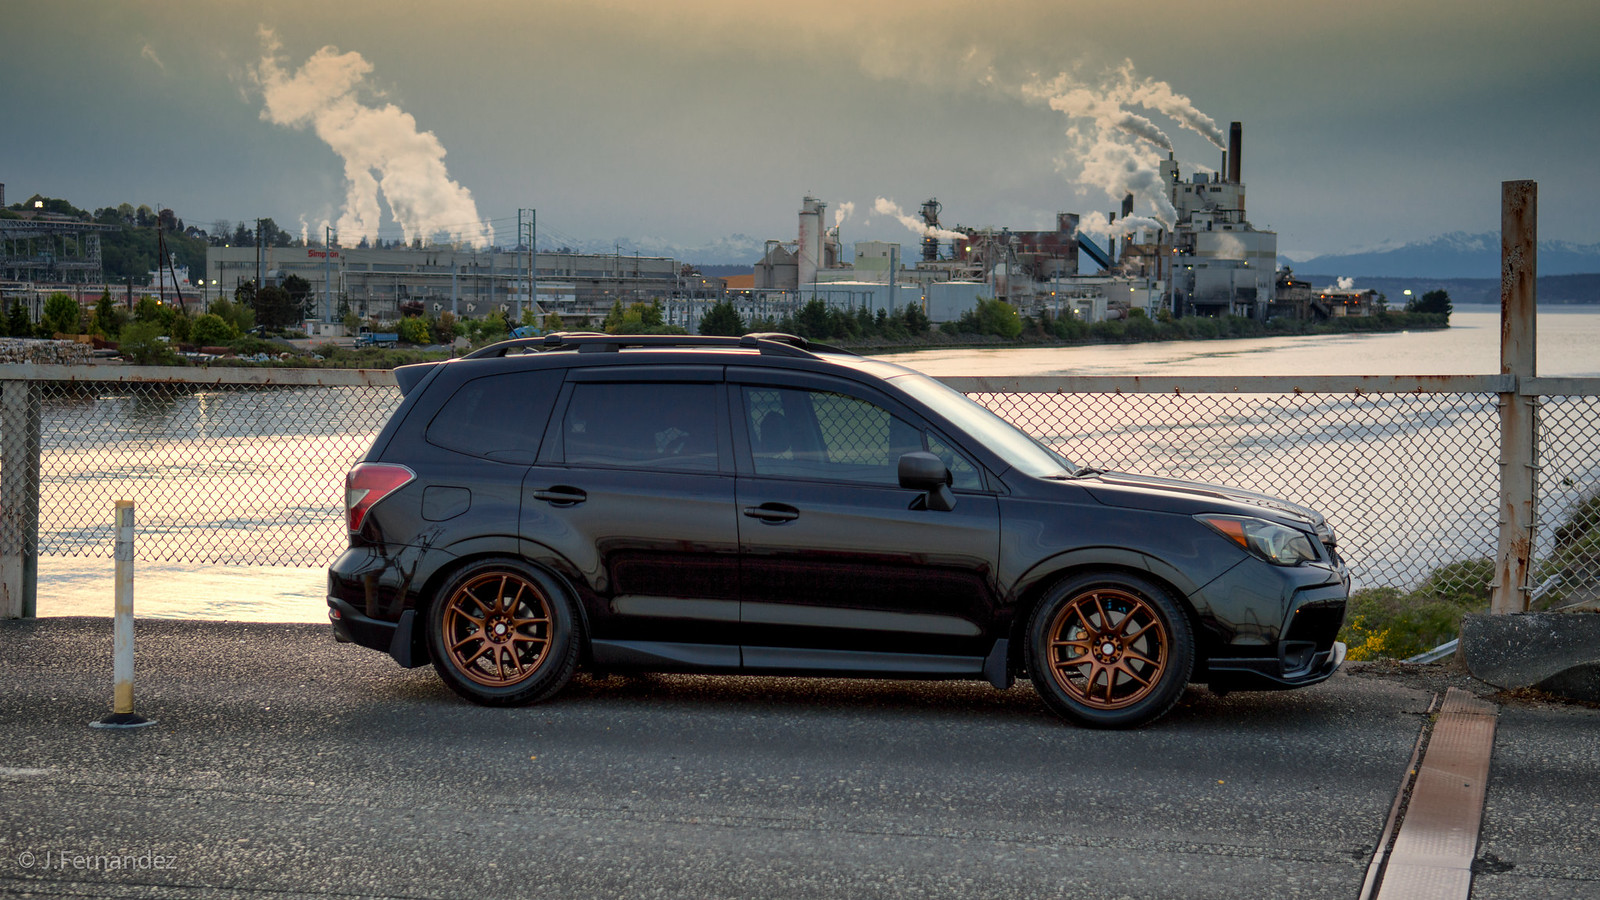 Subaru forester owners forum view single post post a pic of your ride height suspension setup